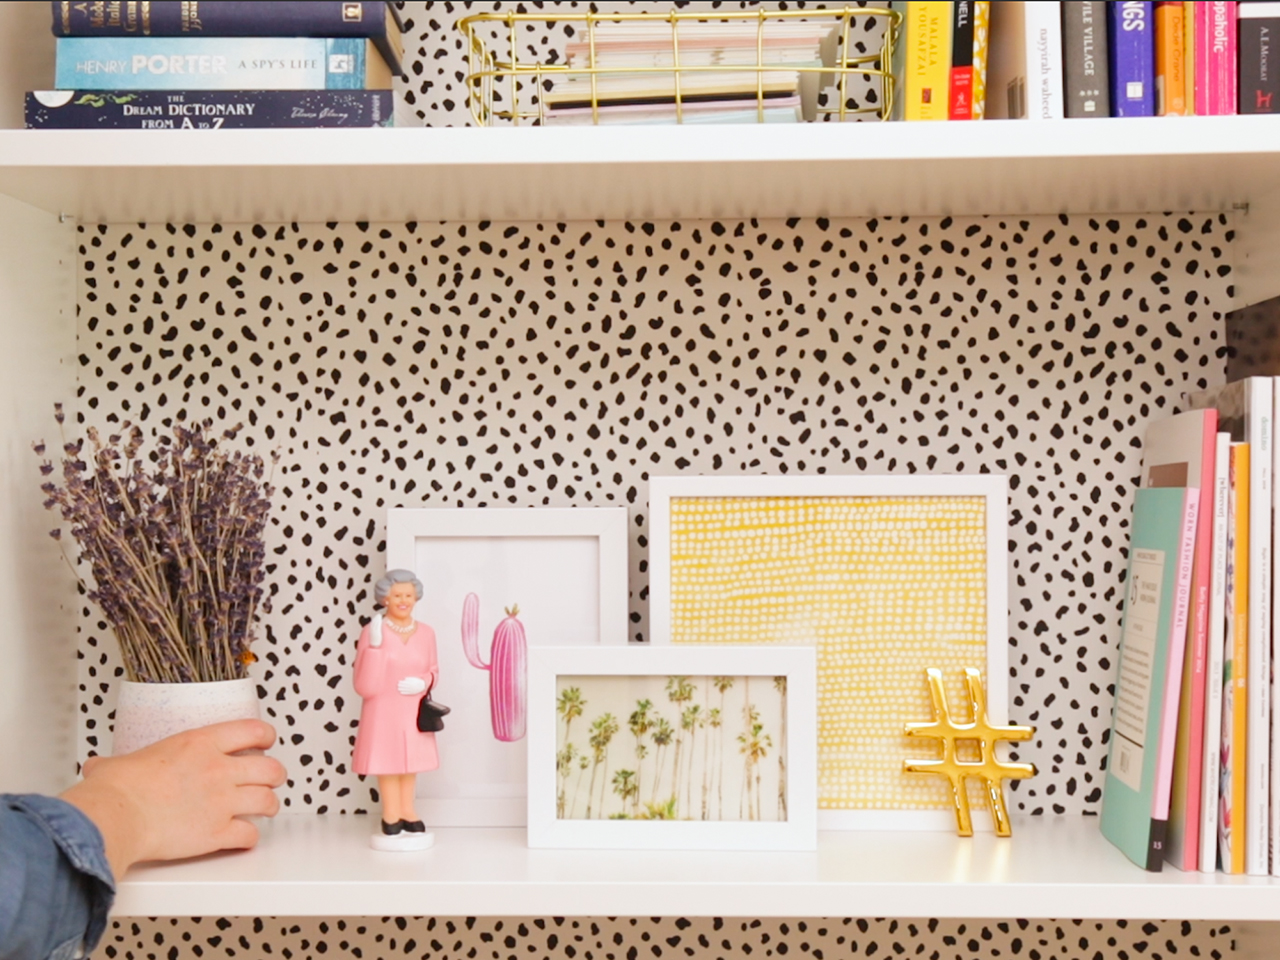 How to transform your bookshelf into a Pinterest-inspired masterpiece — for under $150